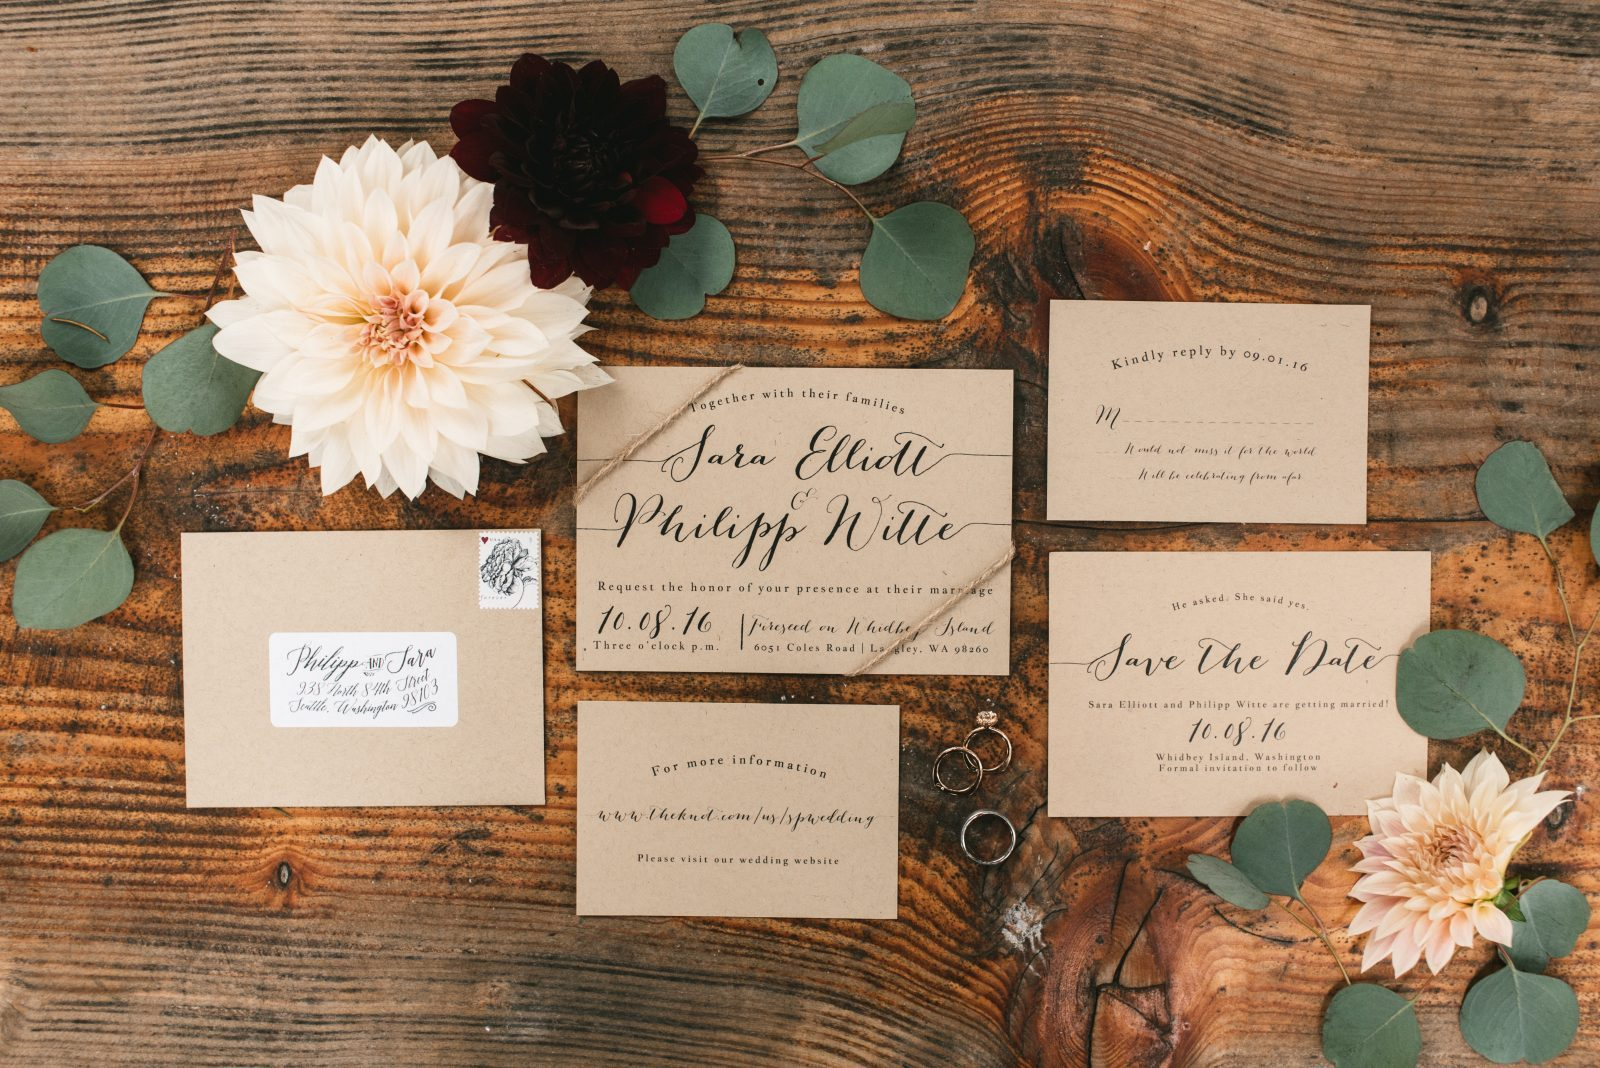 How to save money on your wedding invitations and stationary: https://tinyurl.com/htyb669